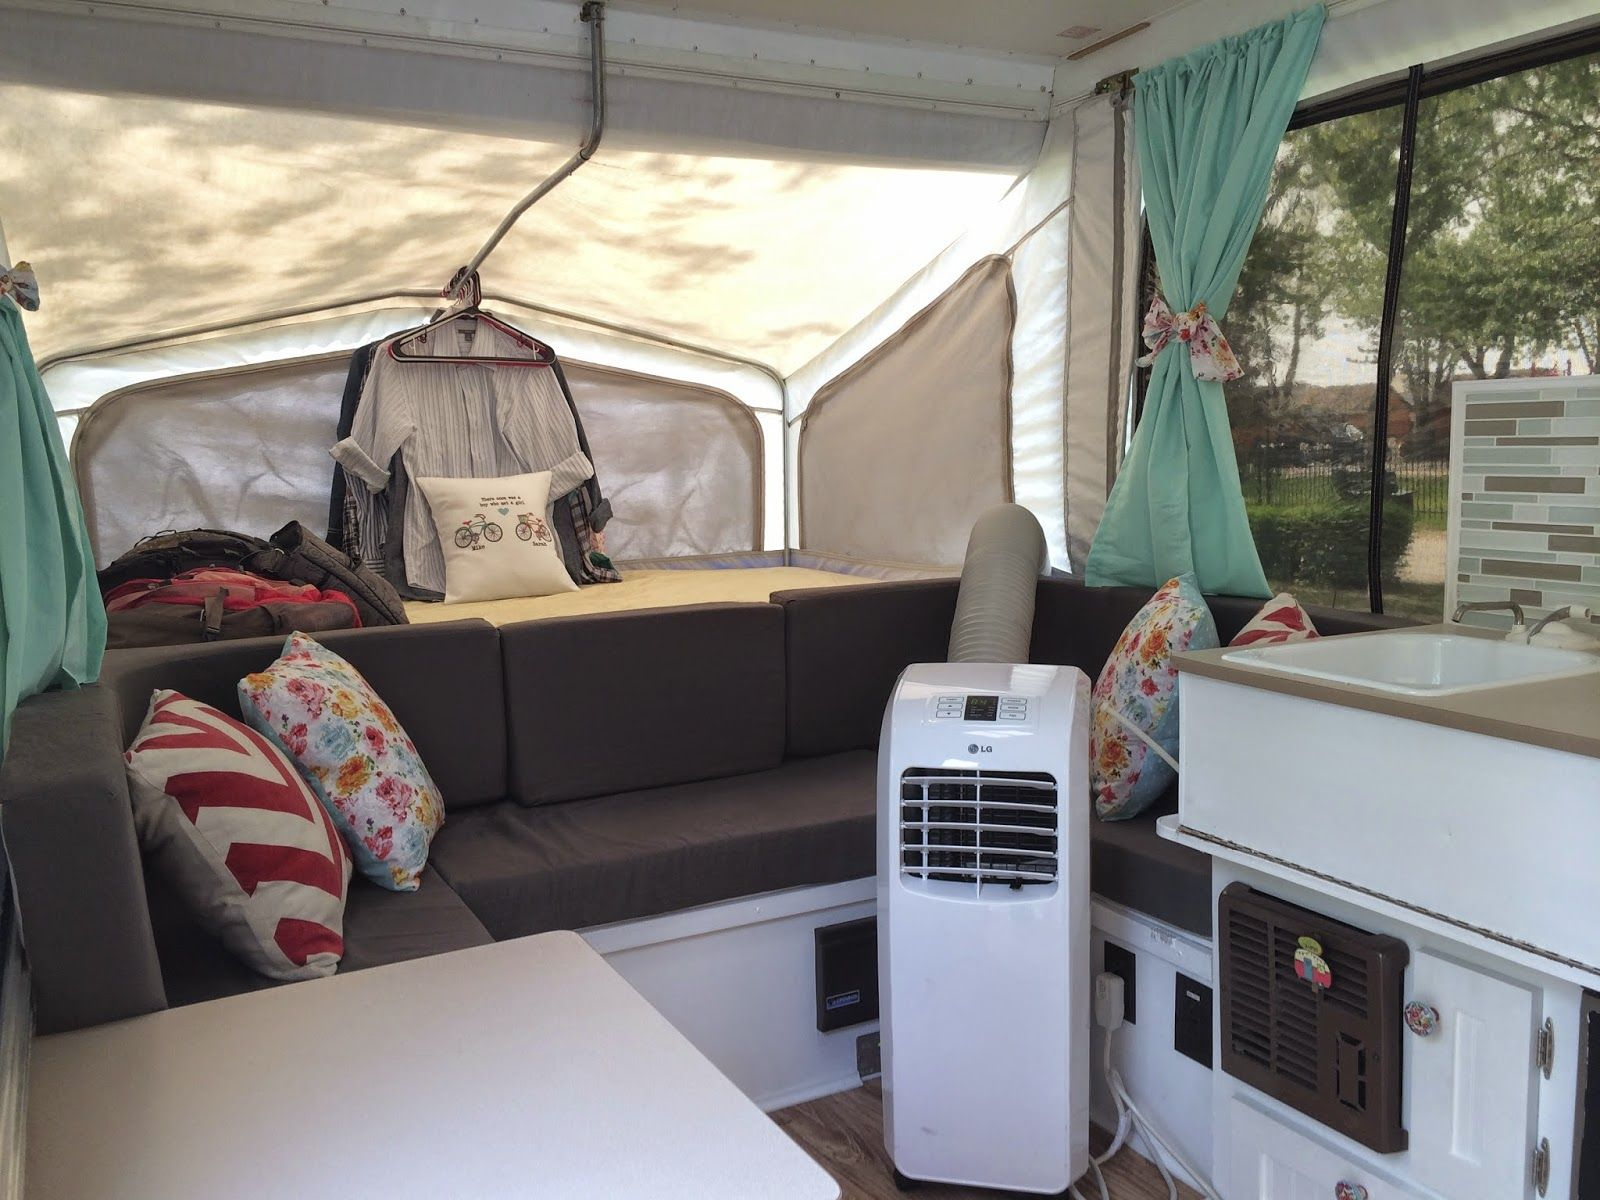 bardieb on Pinterest Pop Up Campers Campers and Decorating A Camper #846F47